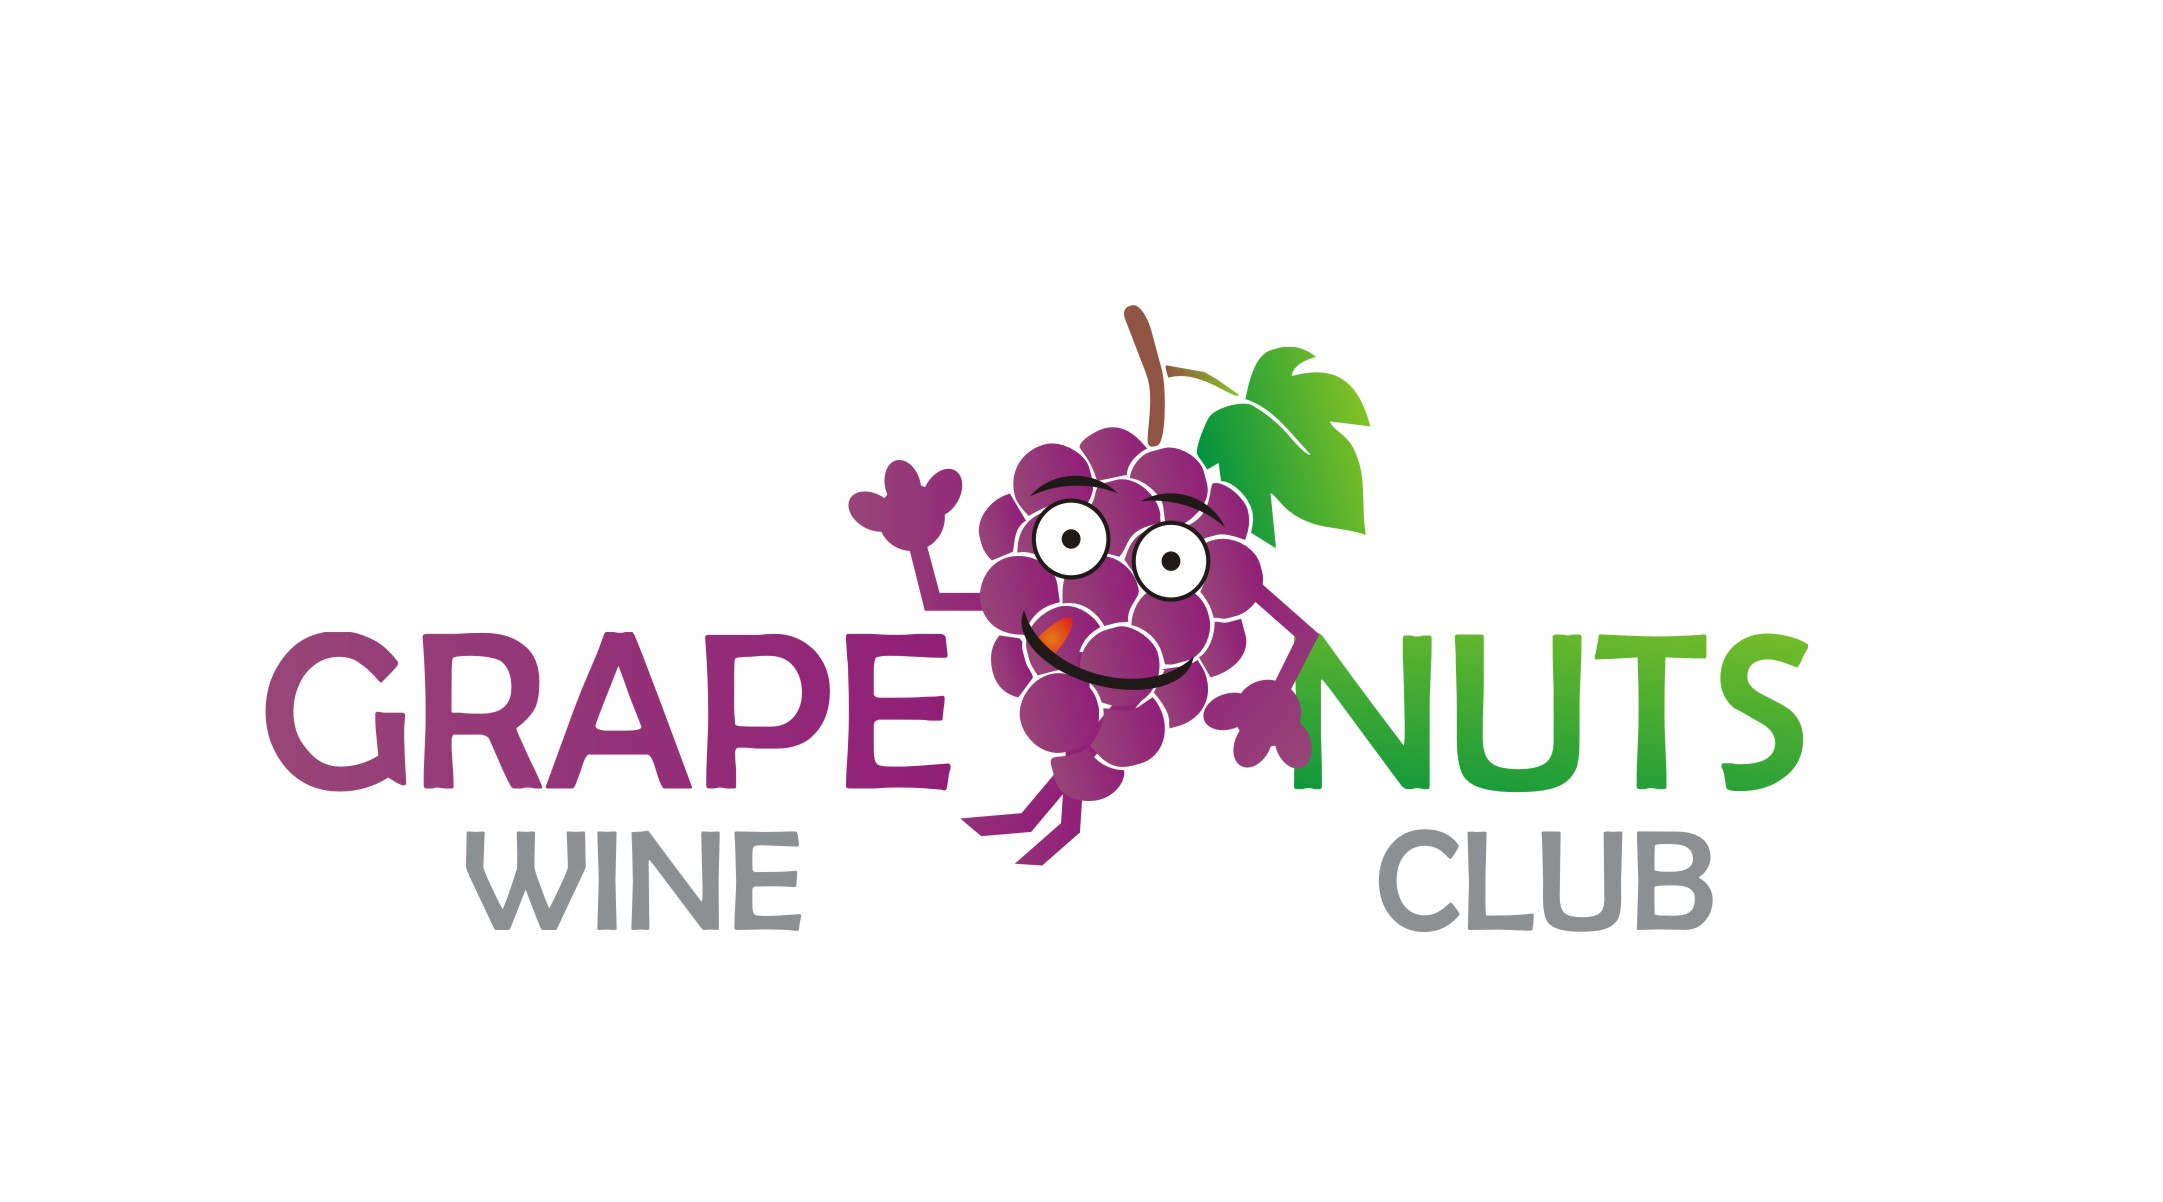 Logo Design by Yuda Hermawan - Entry No. 33 in the Logo Design Contest Artistic Logo Design for Grape Nuts Wine Club.